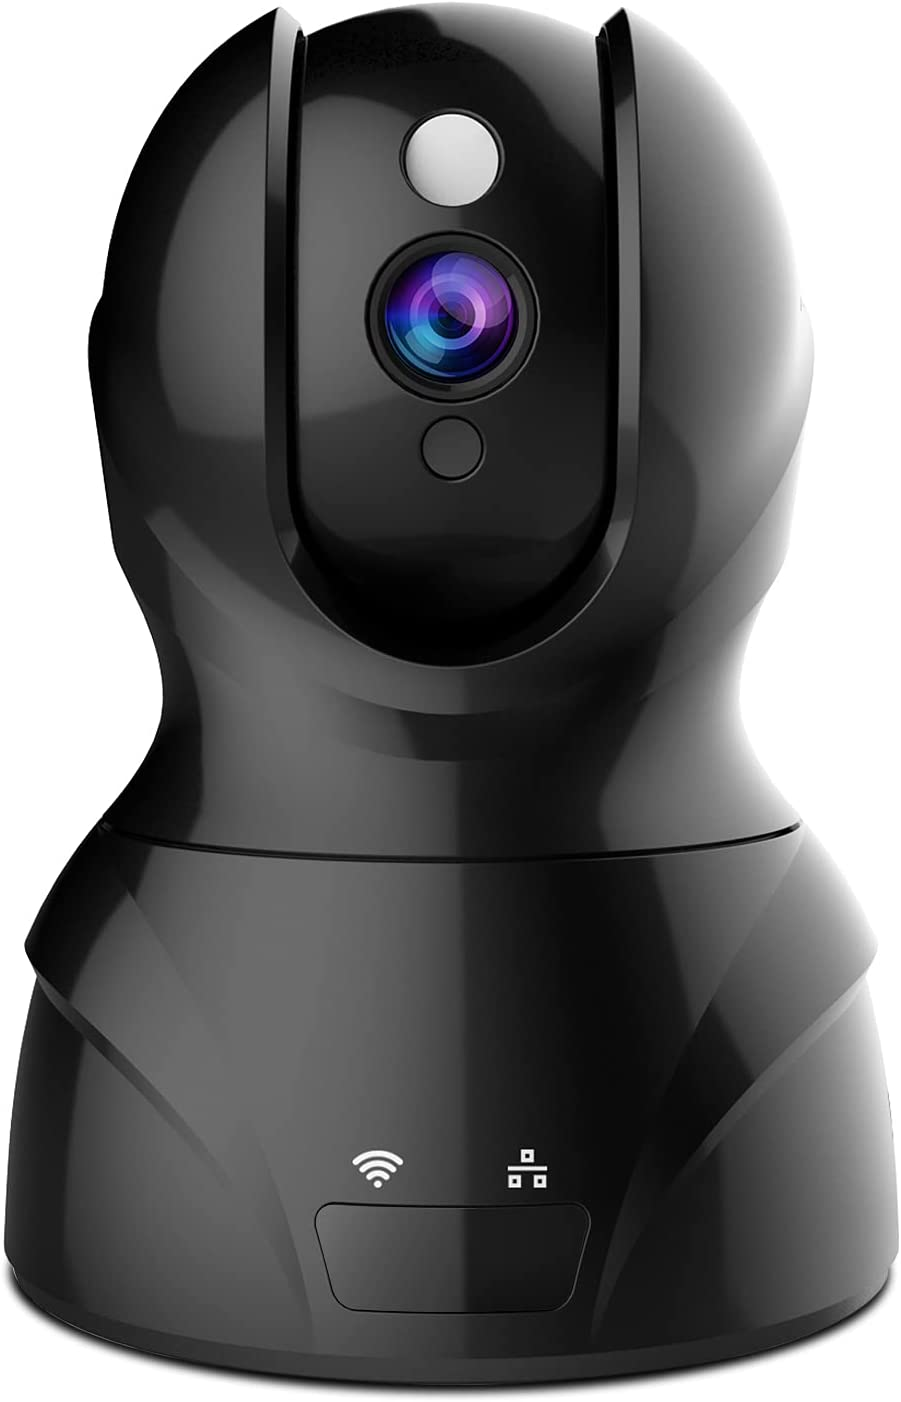 Security Camera 1080P WiFi Dog Pet Camera - Wireless Indoor Pan/Tilt/Zoom Home Camera Baby Monitor IP Camera with Motion Detection Two-Way Audio, Night Vision - Cloud Storage